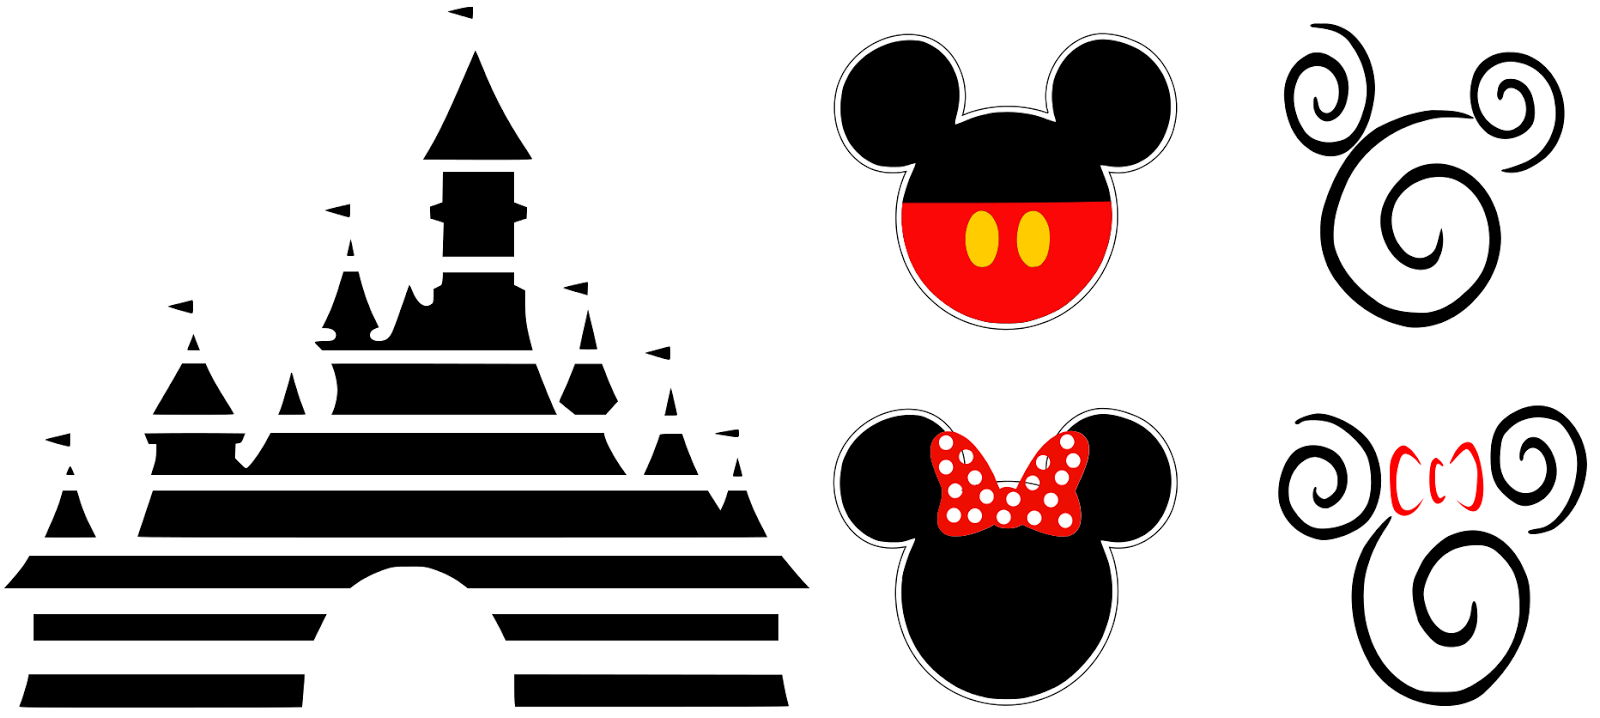 So  this is what I came up with   Disney Pixar Logo Castle